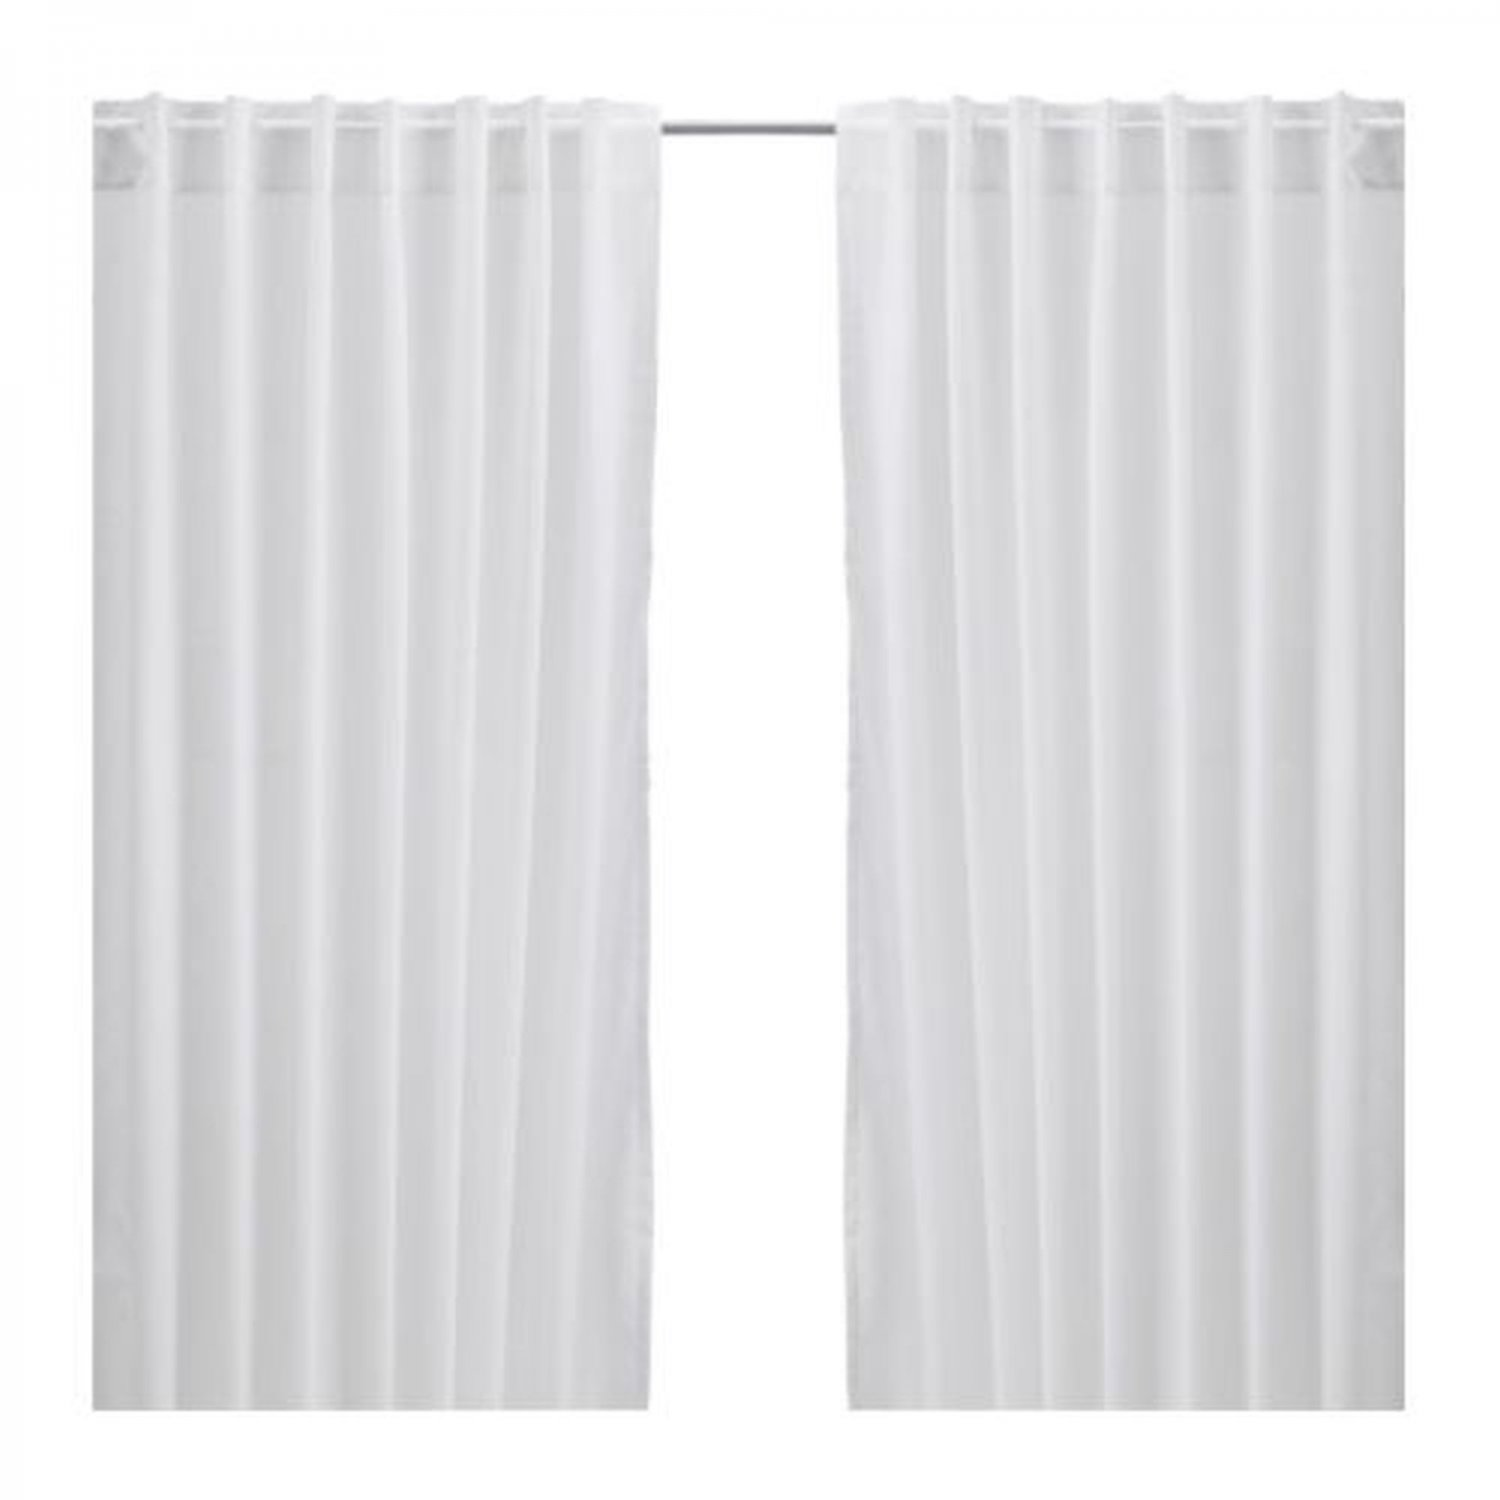 Ikea vivan curtains drapes white 2 panels for Ikea curtain rods uk